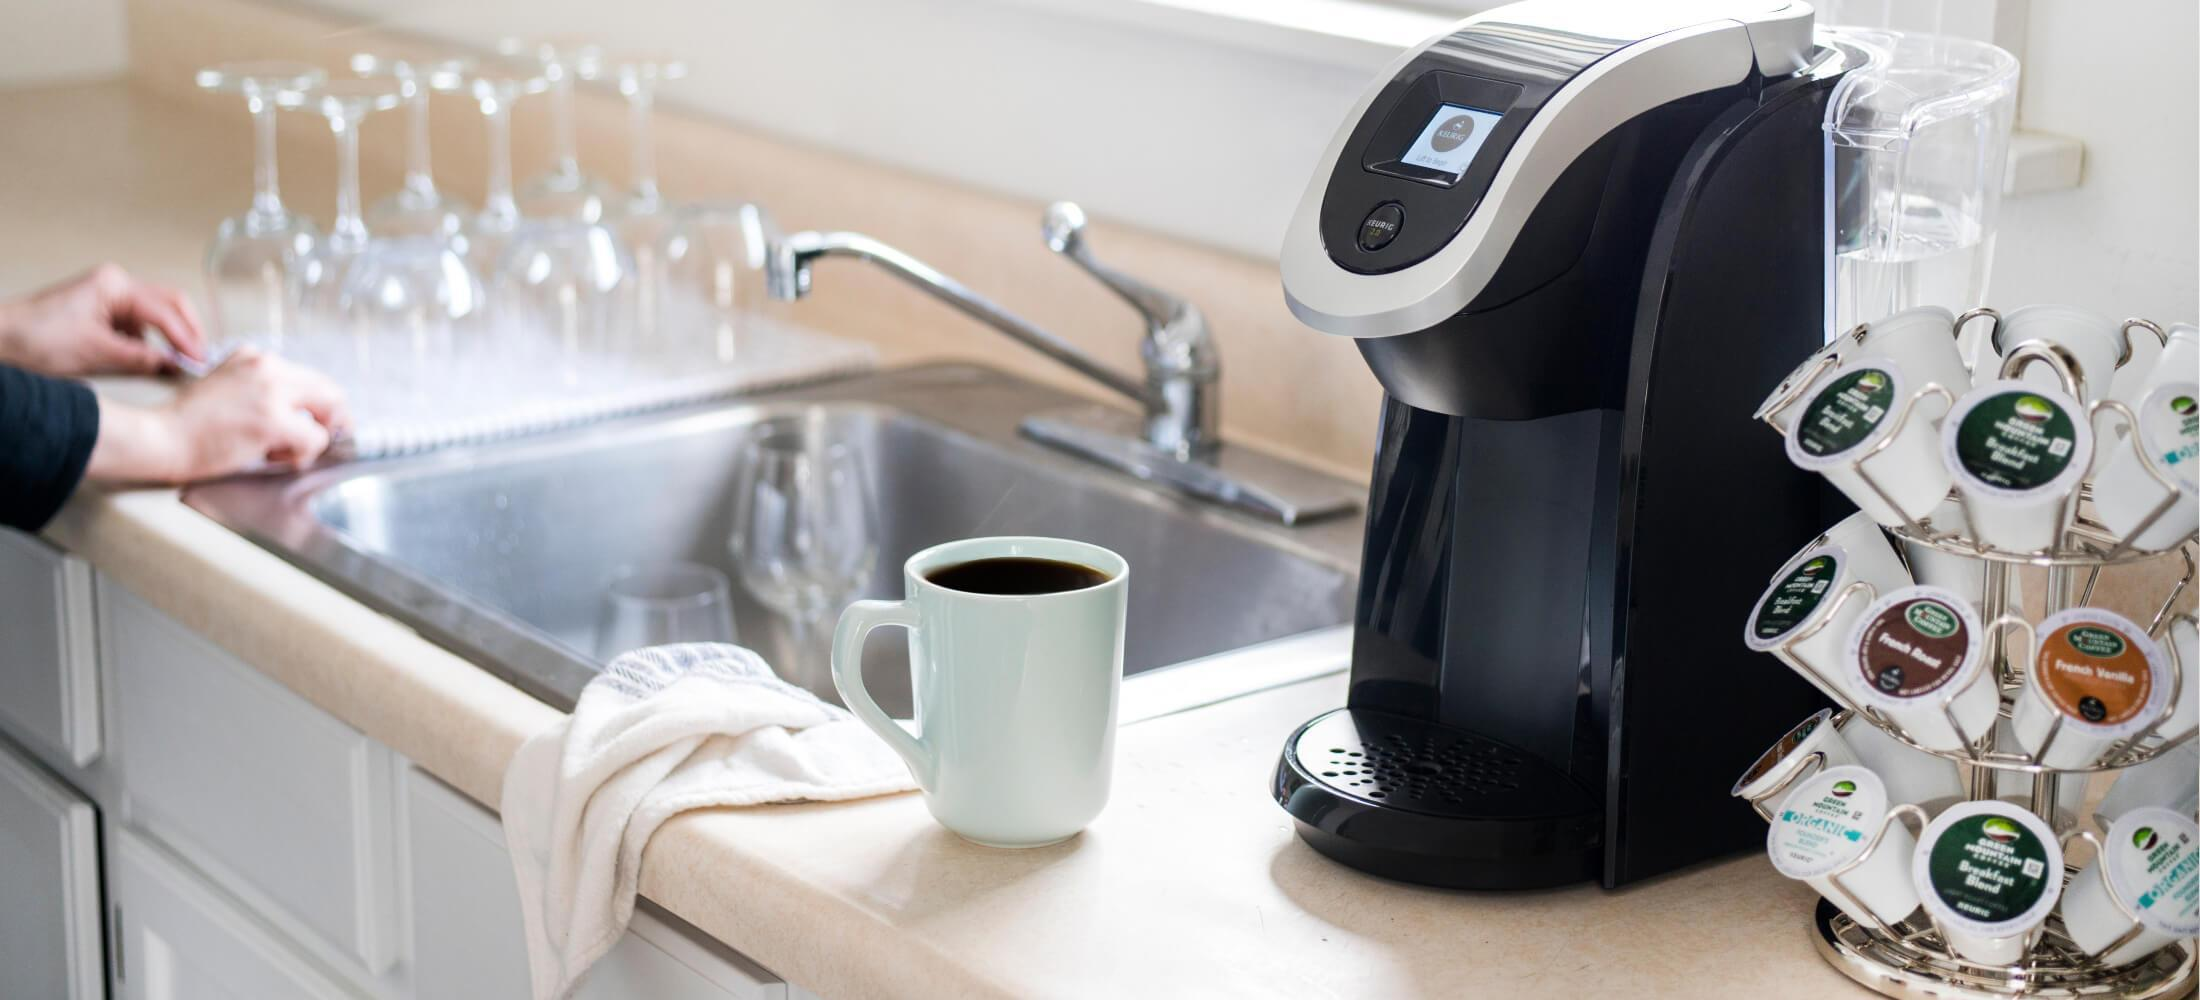 Keurig Troubleshooting: 5 Simple Solutions to Common Problems